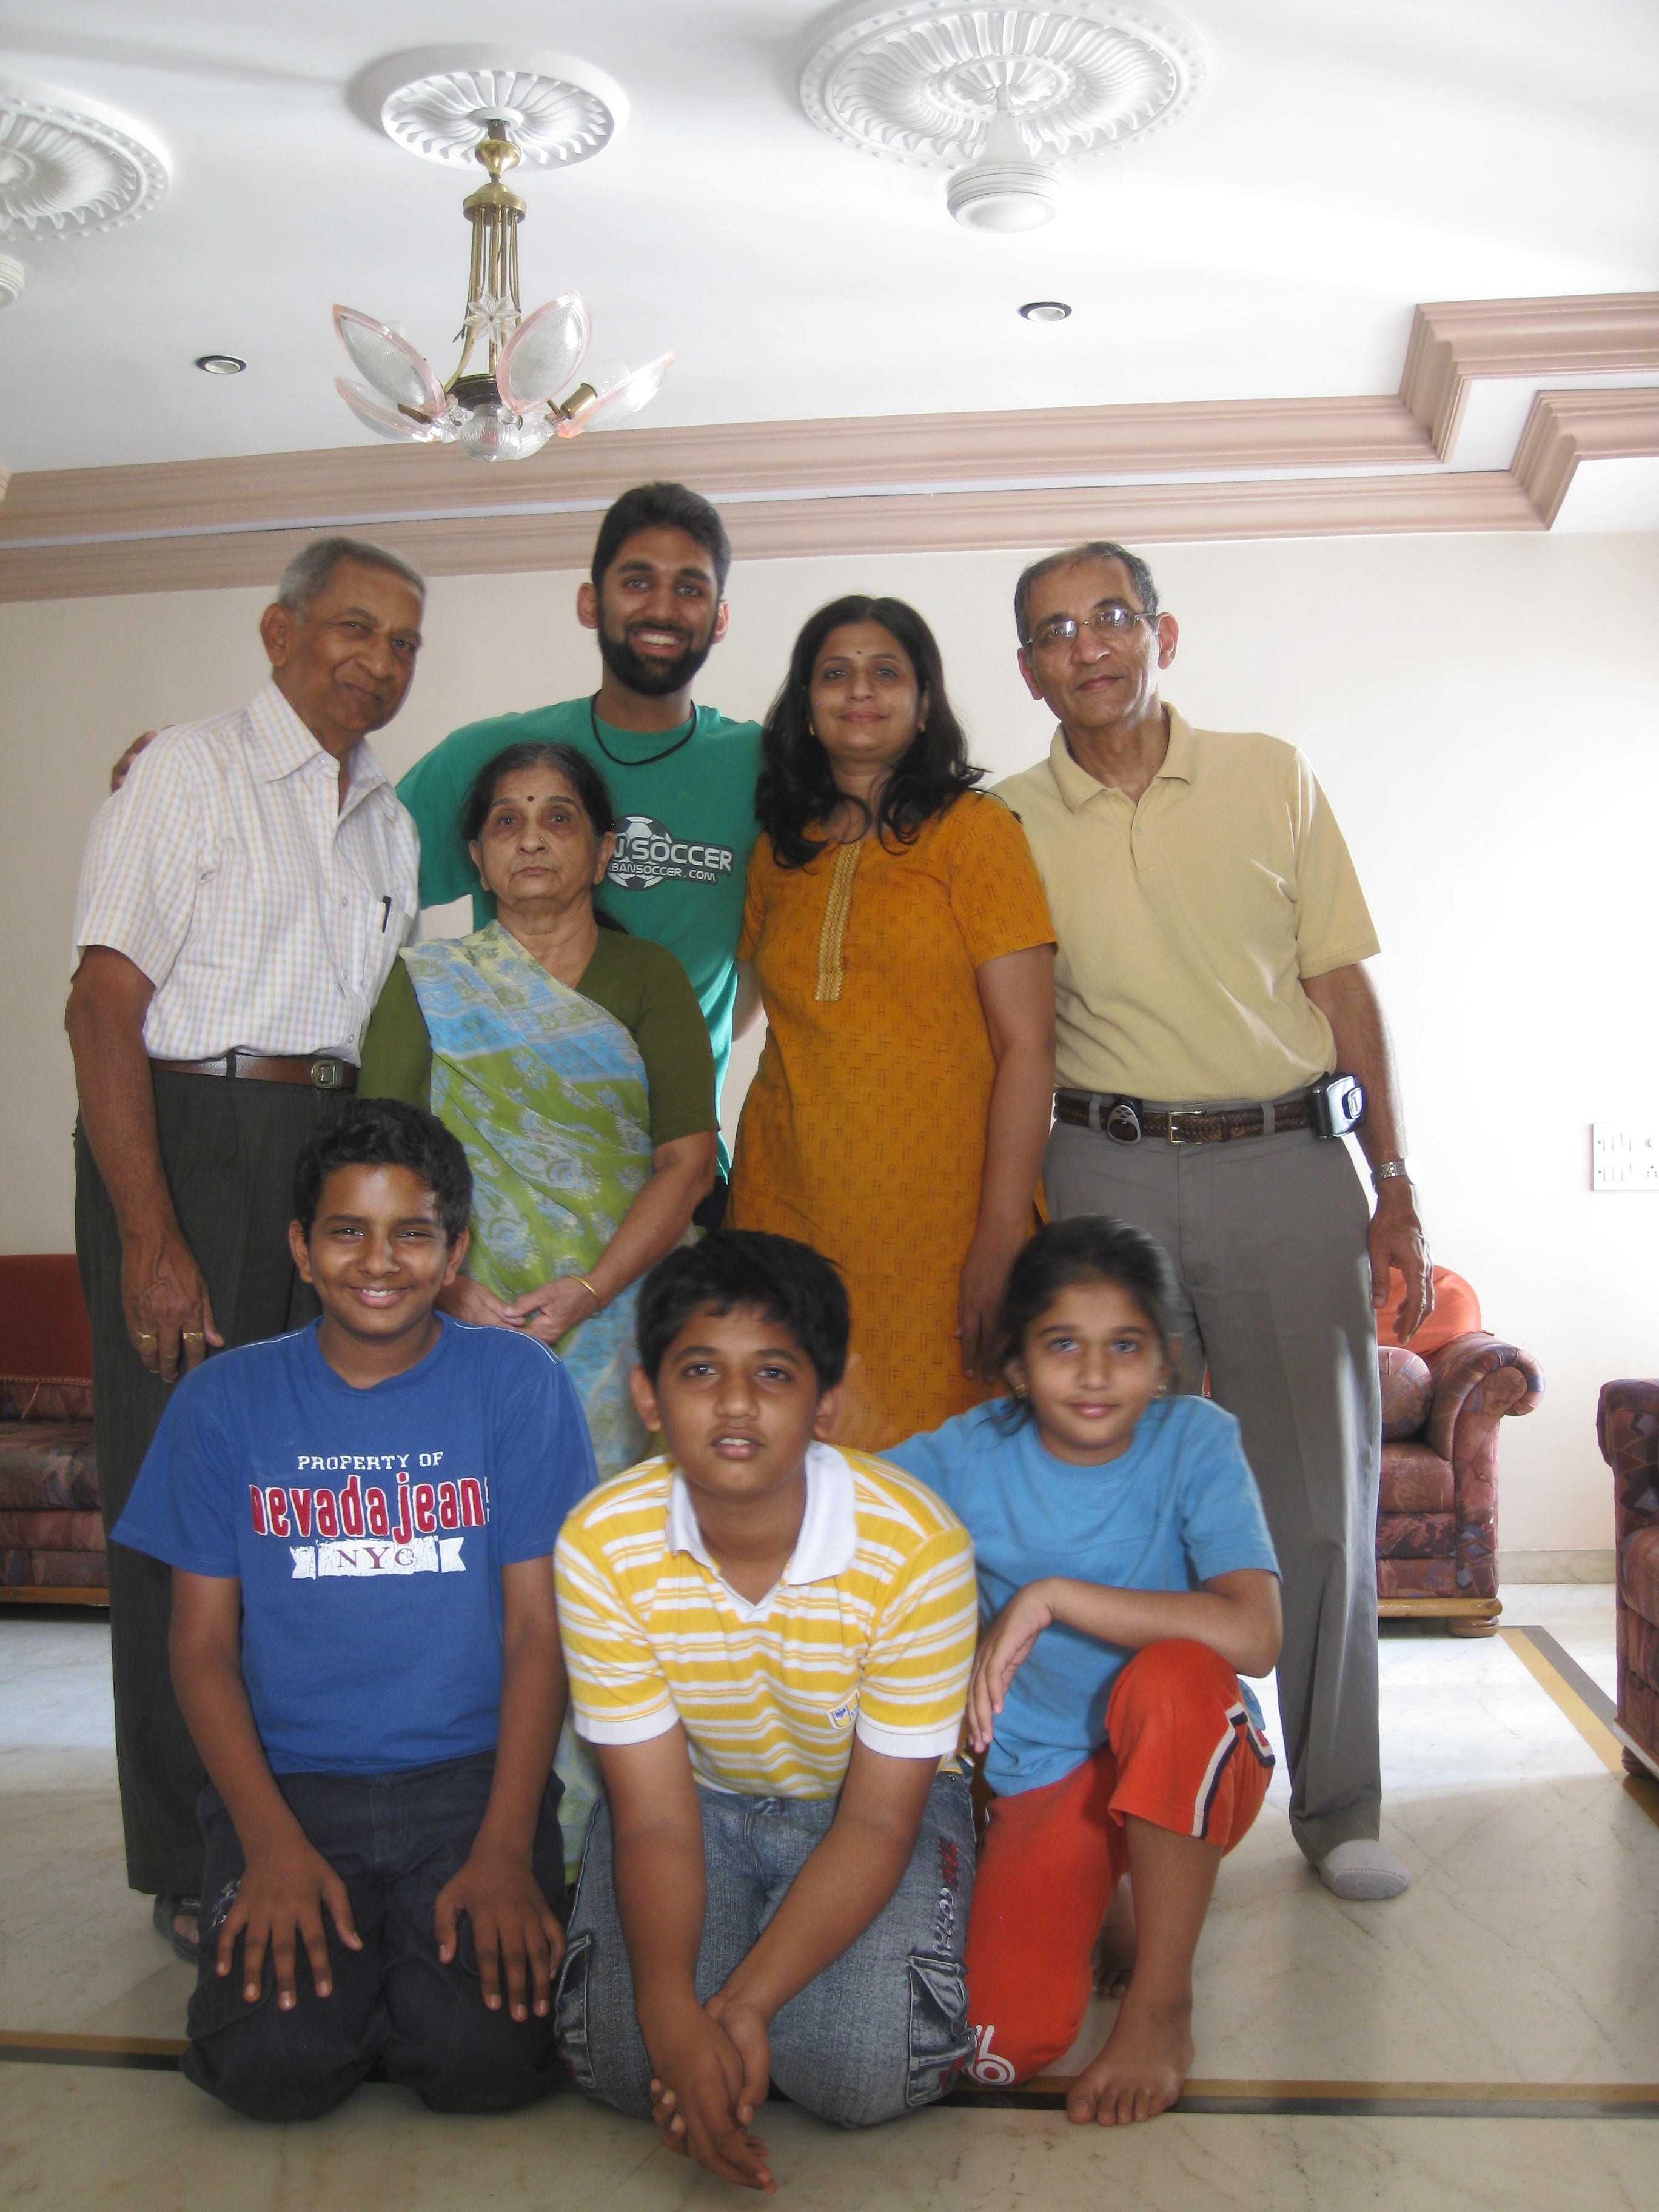 gujarati my family My relative is a manager with a master's degree cu my relative is a manager with a master's degree currently working in private sector in guwahati she comes from a middle class nuclear family background with traditional values .